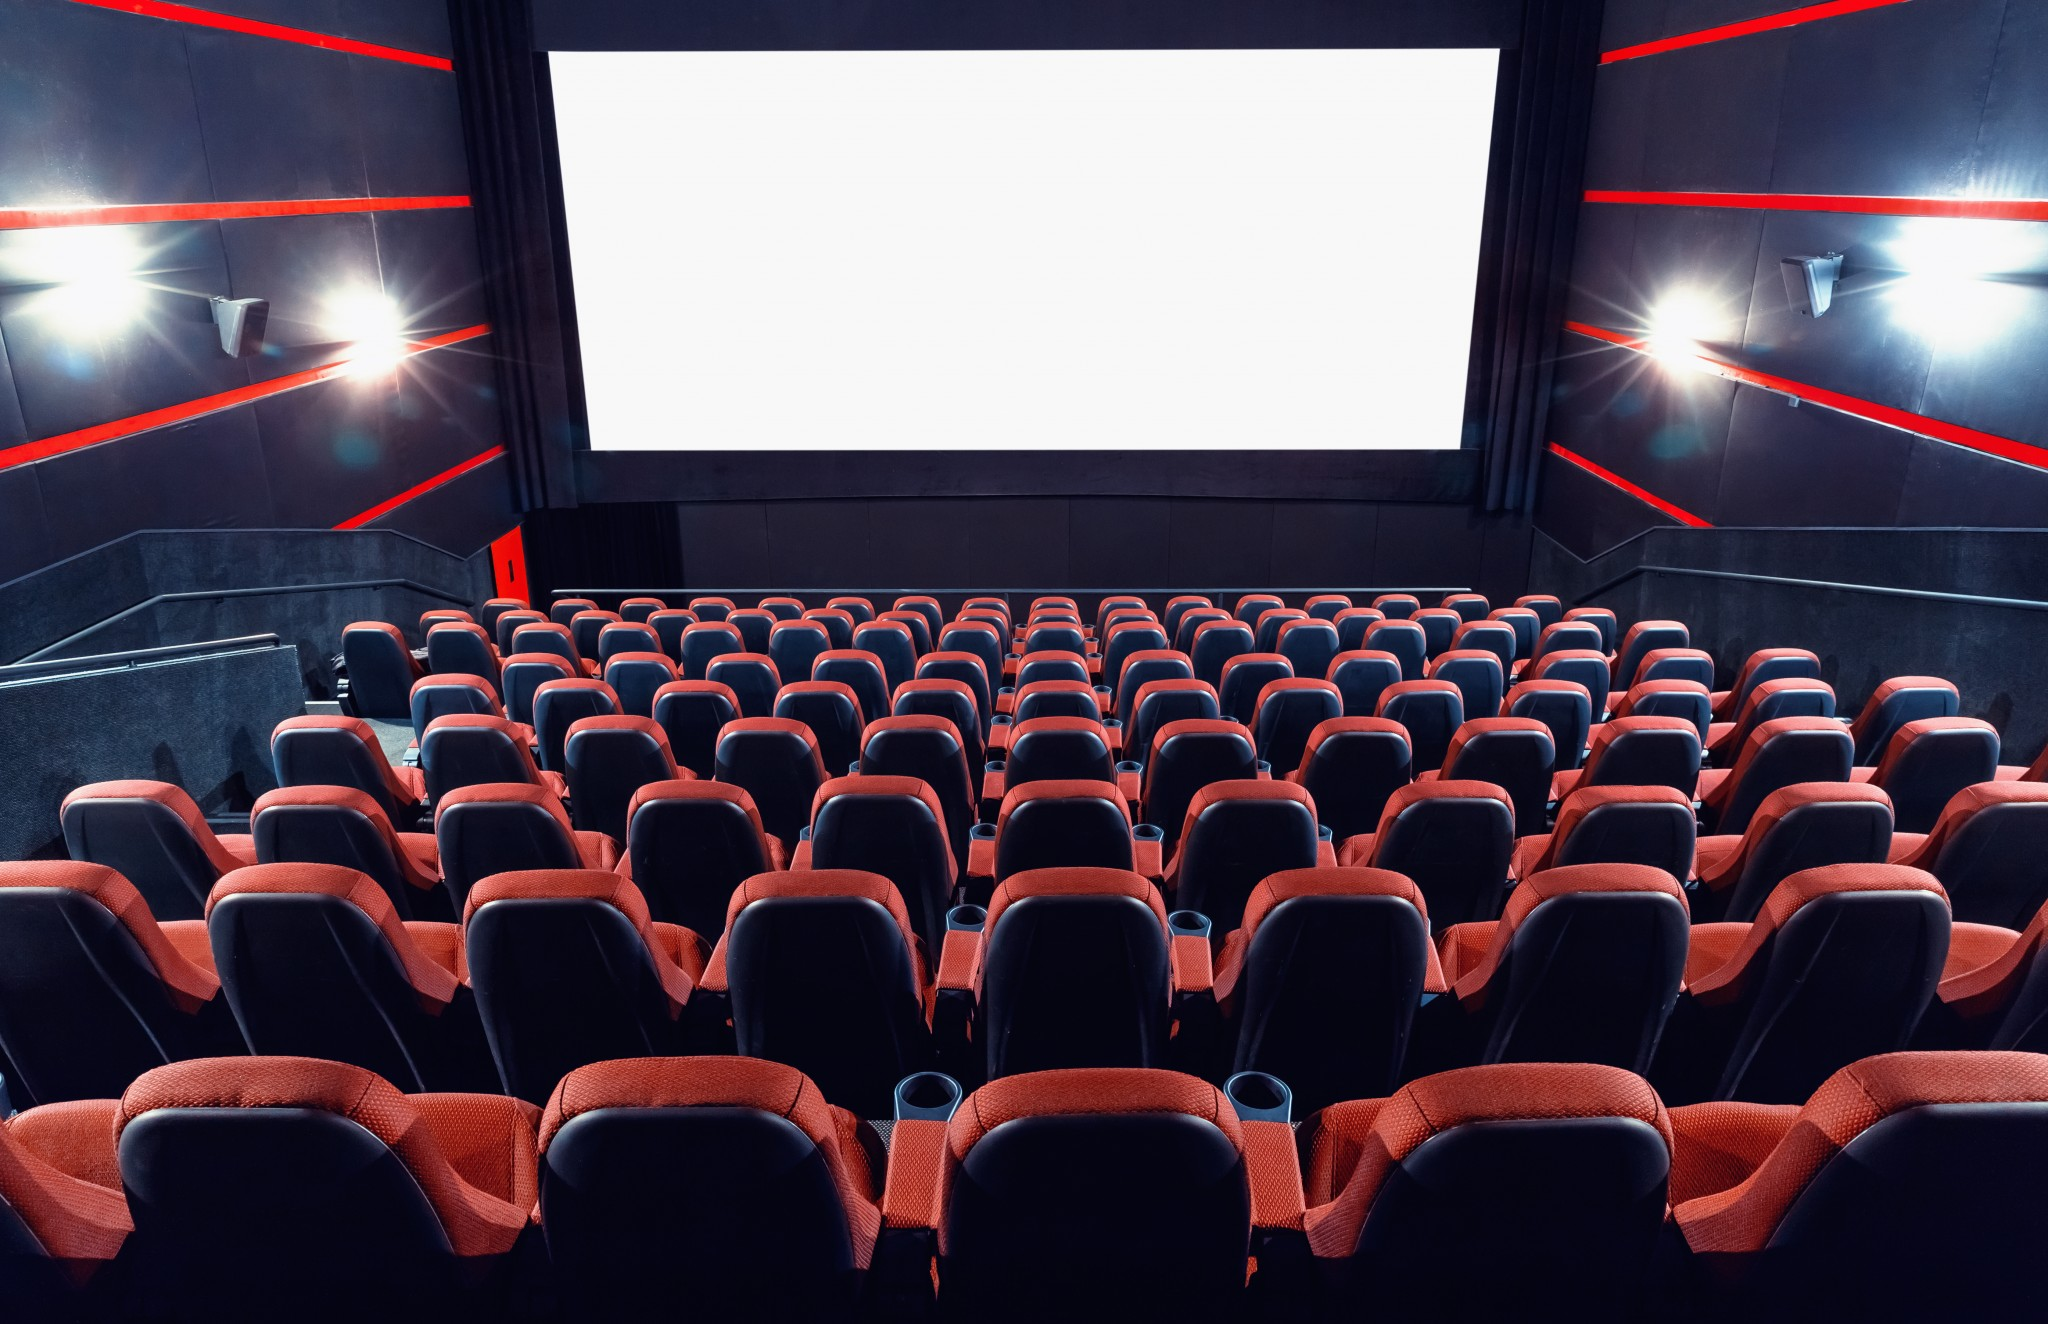 Suply-and-demand-movie-theater-seats.jpg..jpg